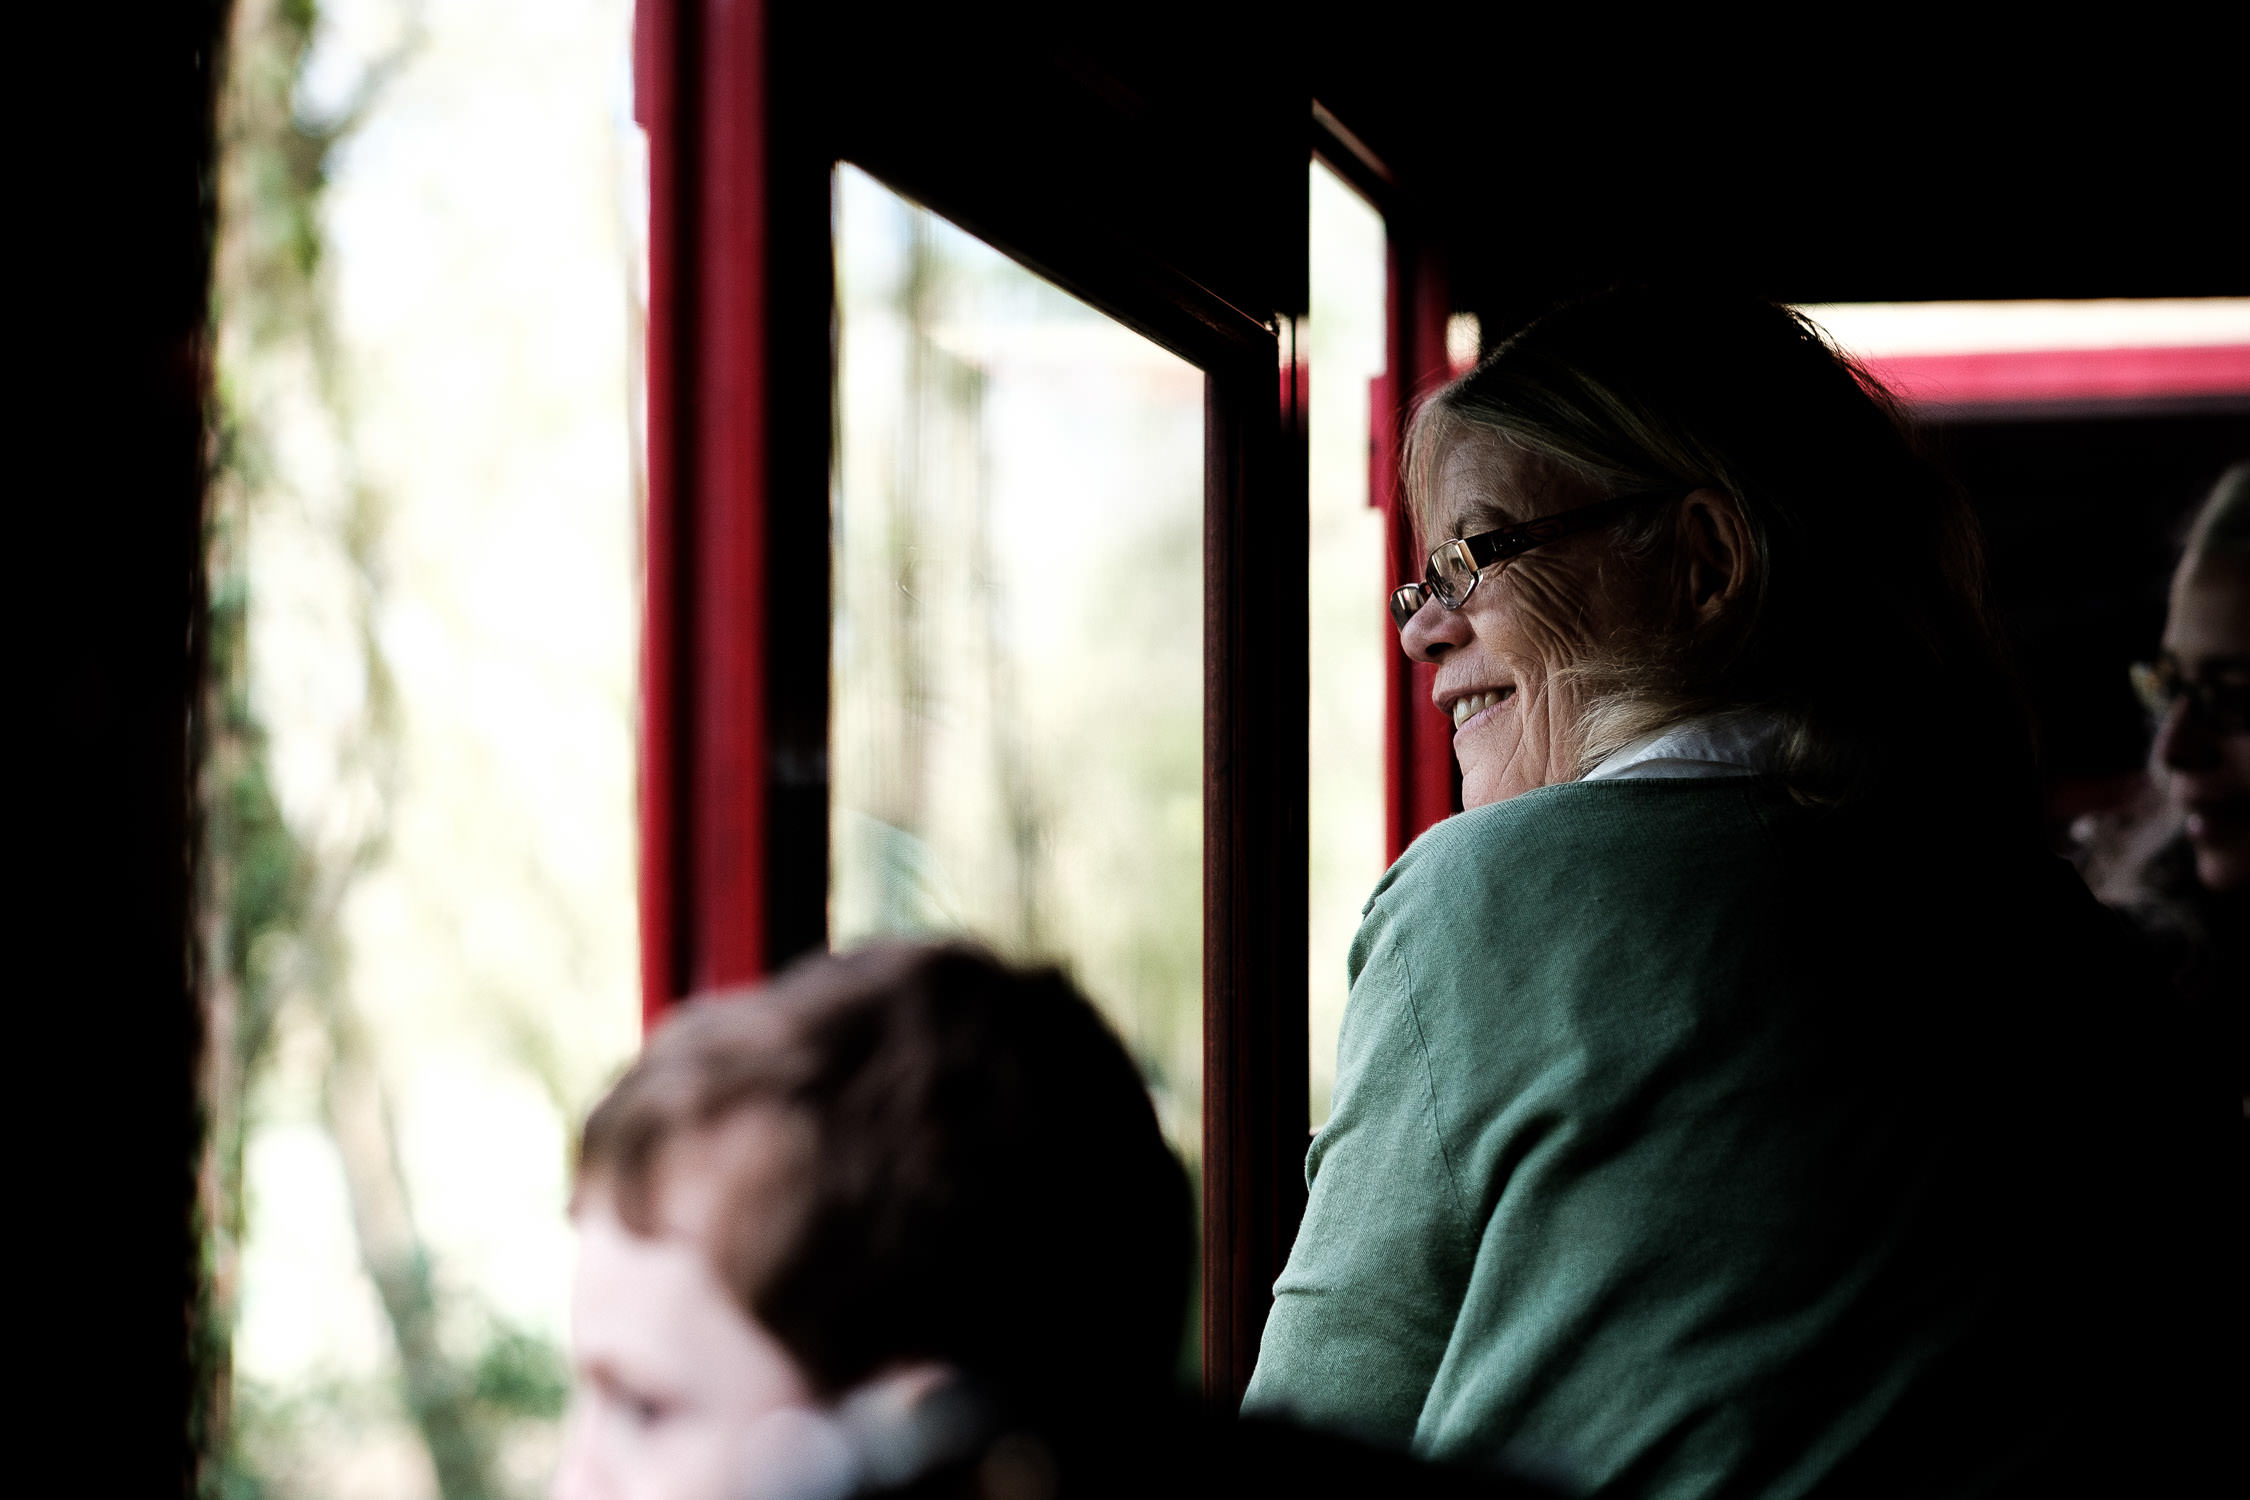 grandmother smiling on train